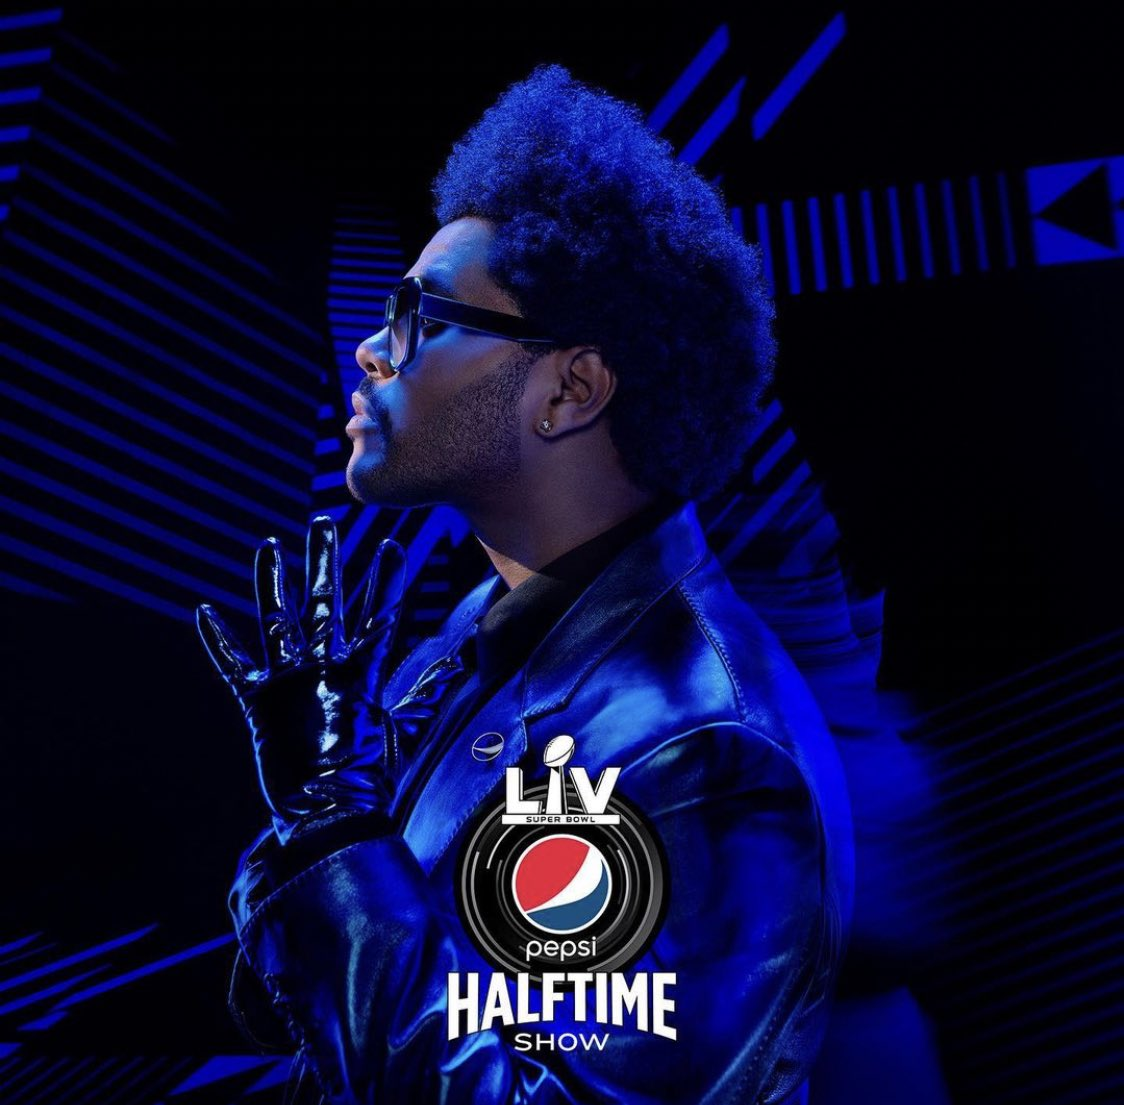 IT'S OFFICIAL the #weeknd will hit the stage of the 2021 Super Bowl halftime show the 7th February 🔥🔥 Wait for it!!  #SuperBowl #SuperBowl2021 #SuperBowlLV #PepsiHalftime #TheWeeknd #america #USA #American #event #FridayFeeling